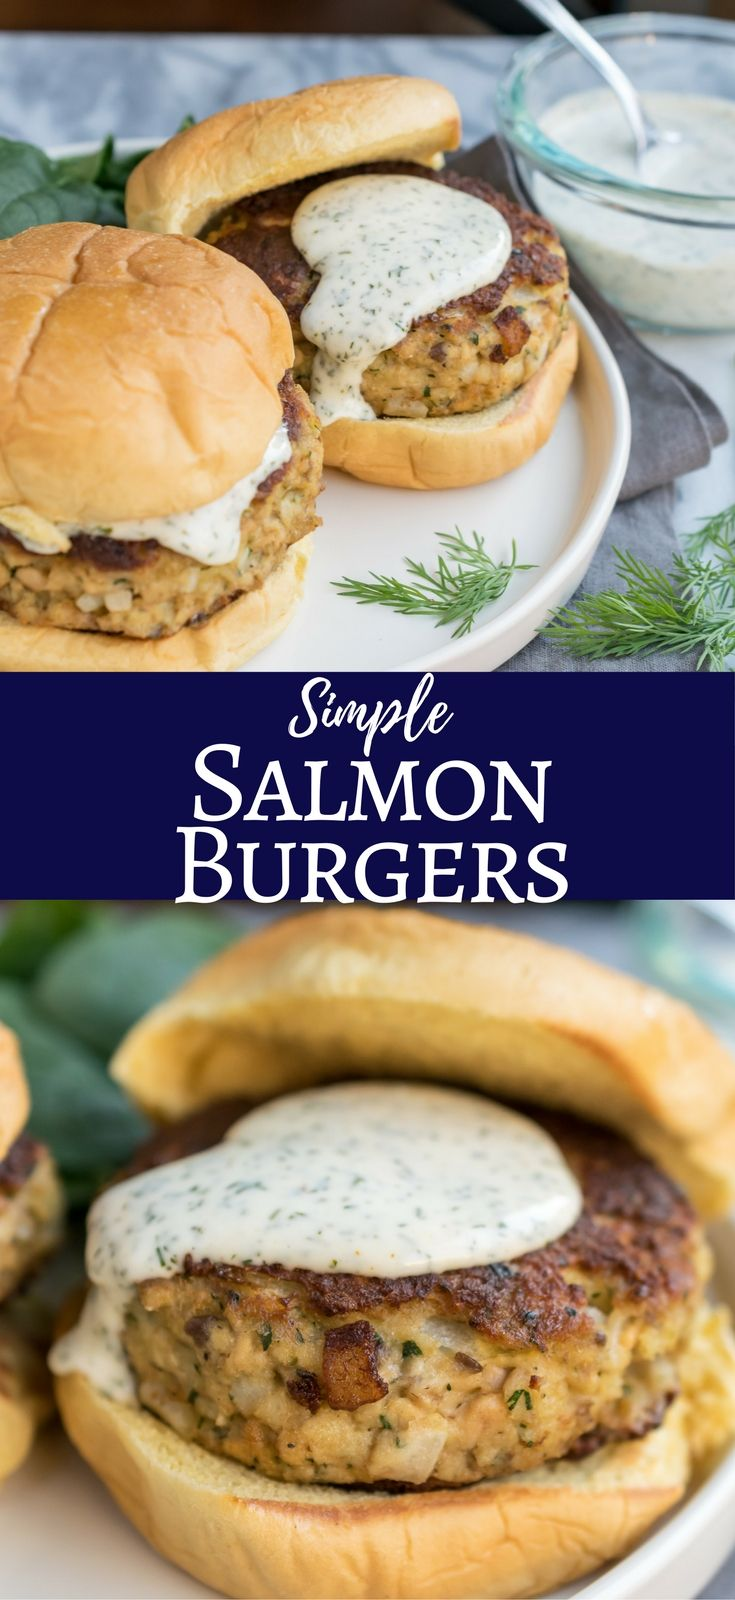 Burgers made with Salmon and sweet Vidalia onions then topped with a lemon and dill mayonnaise. Salmon Burgers. Click now for recipe. www.cooksandkid.com